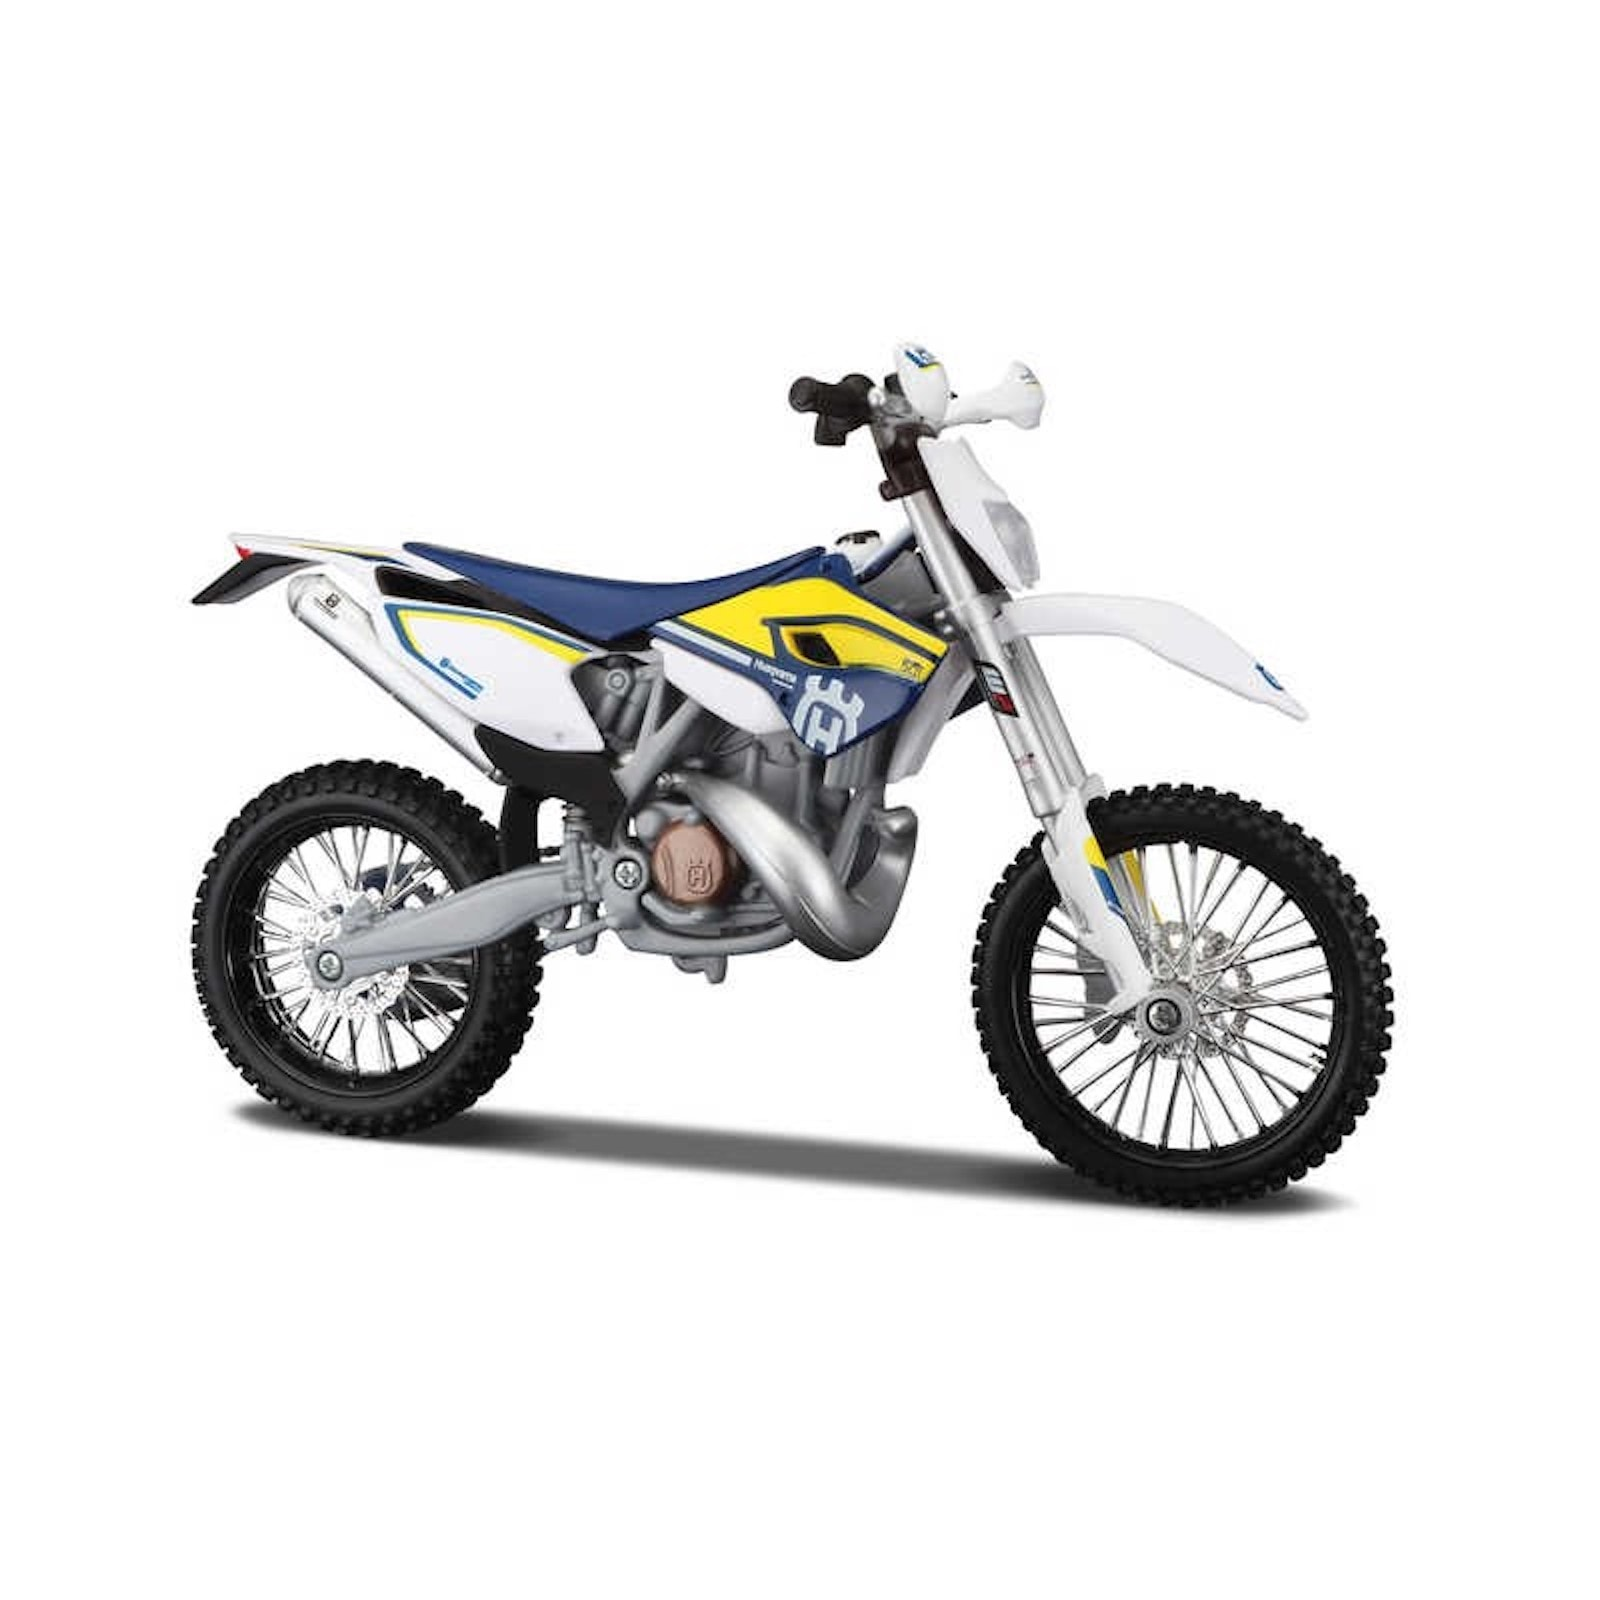 Husqvarna FE 501 Assembly Kit 1:12 Build Motorbike Scale Model Motorcycle Toy Dads Fathers Kids Birthday Present Christmas Gift